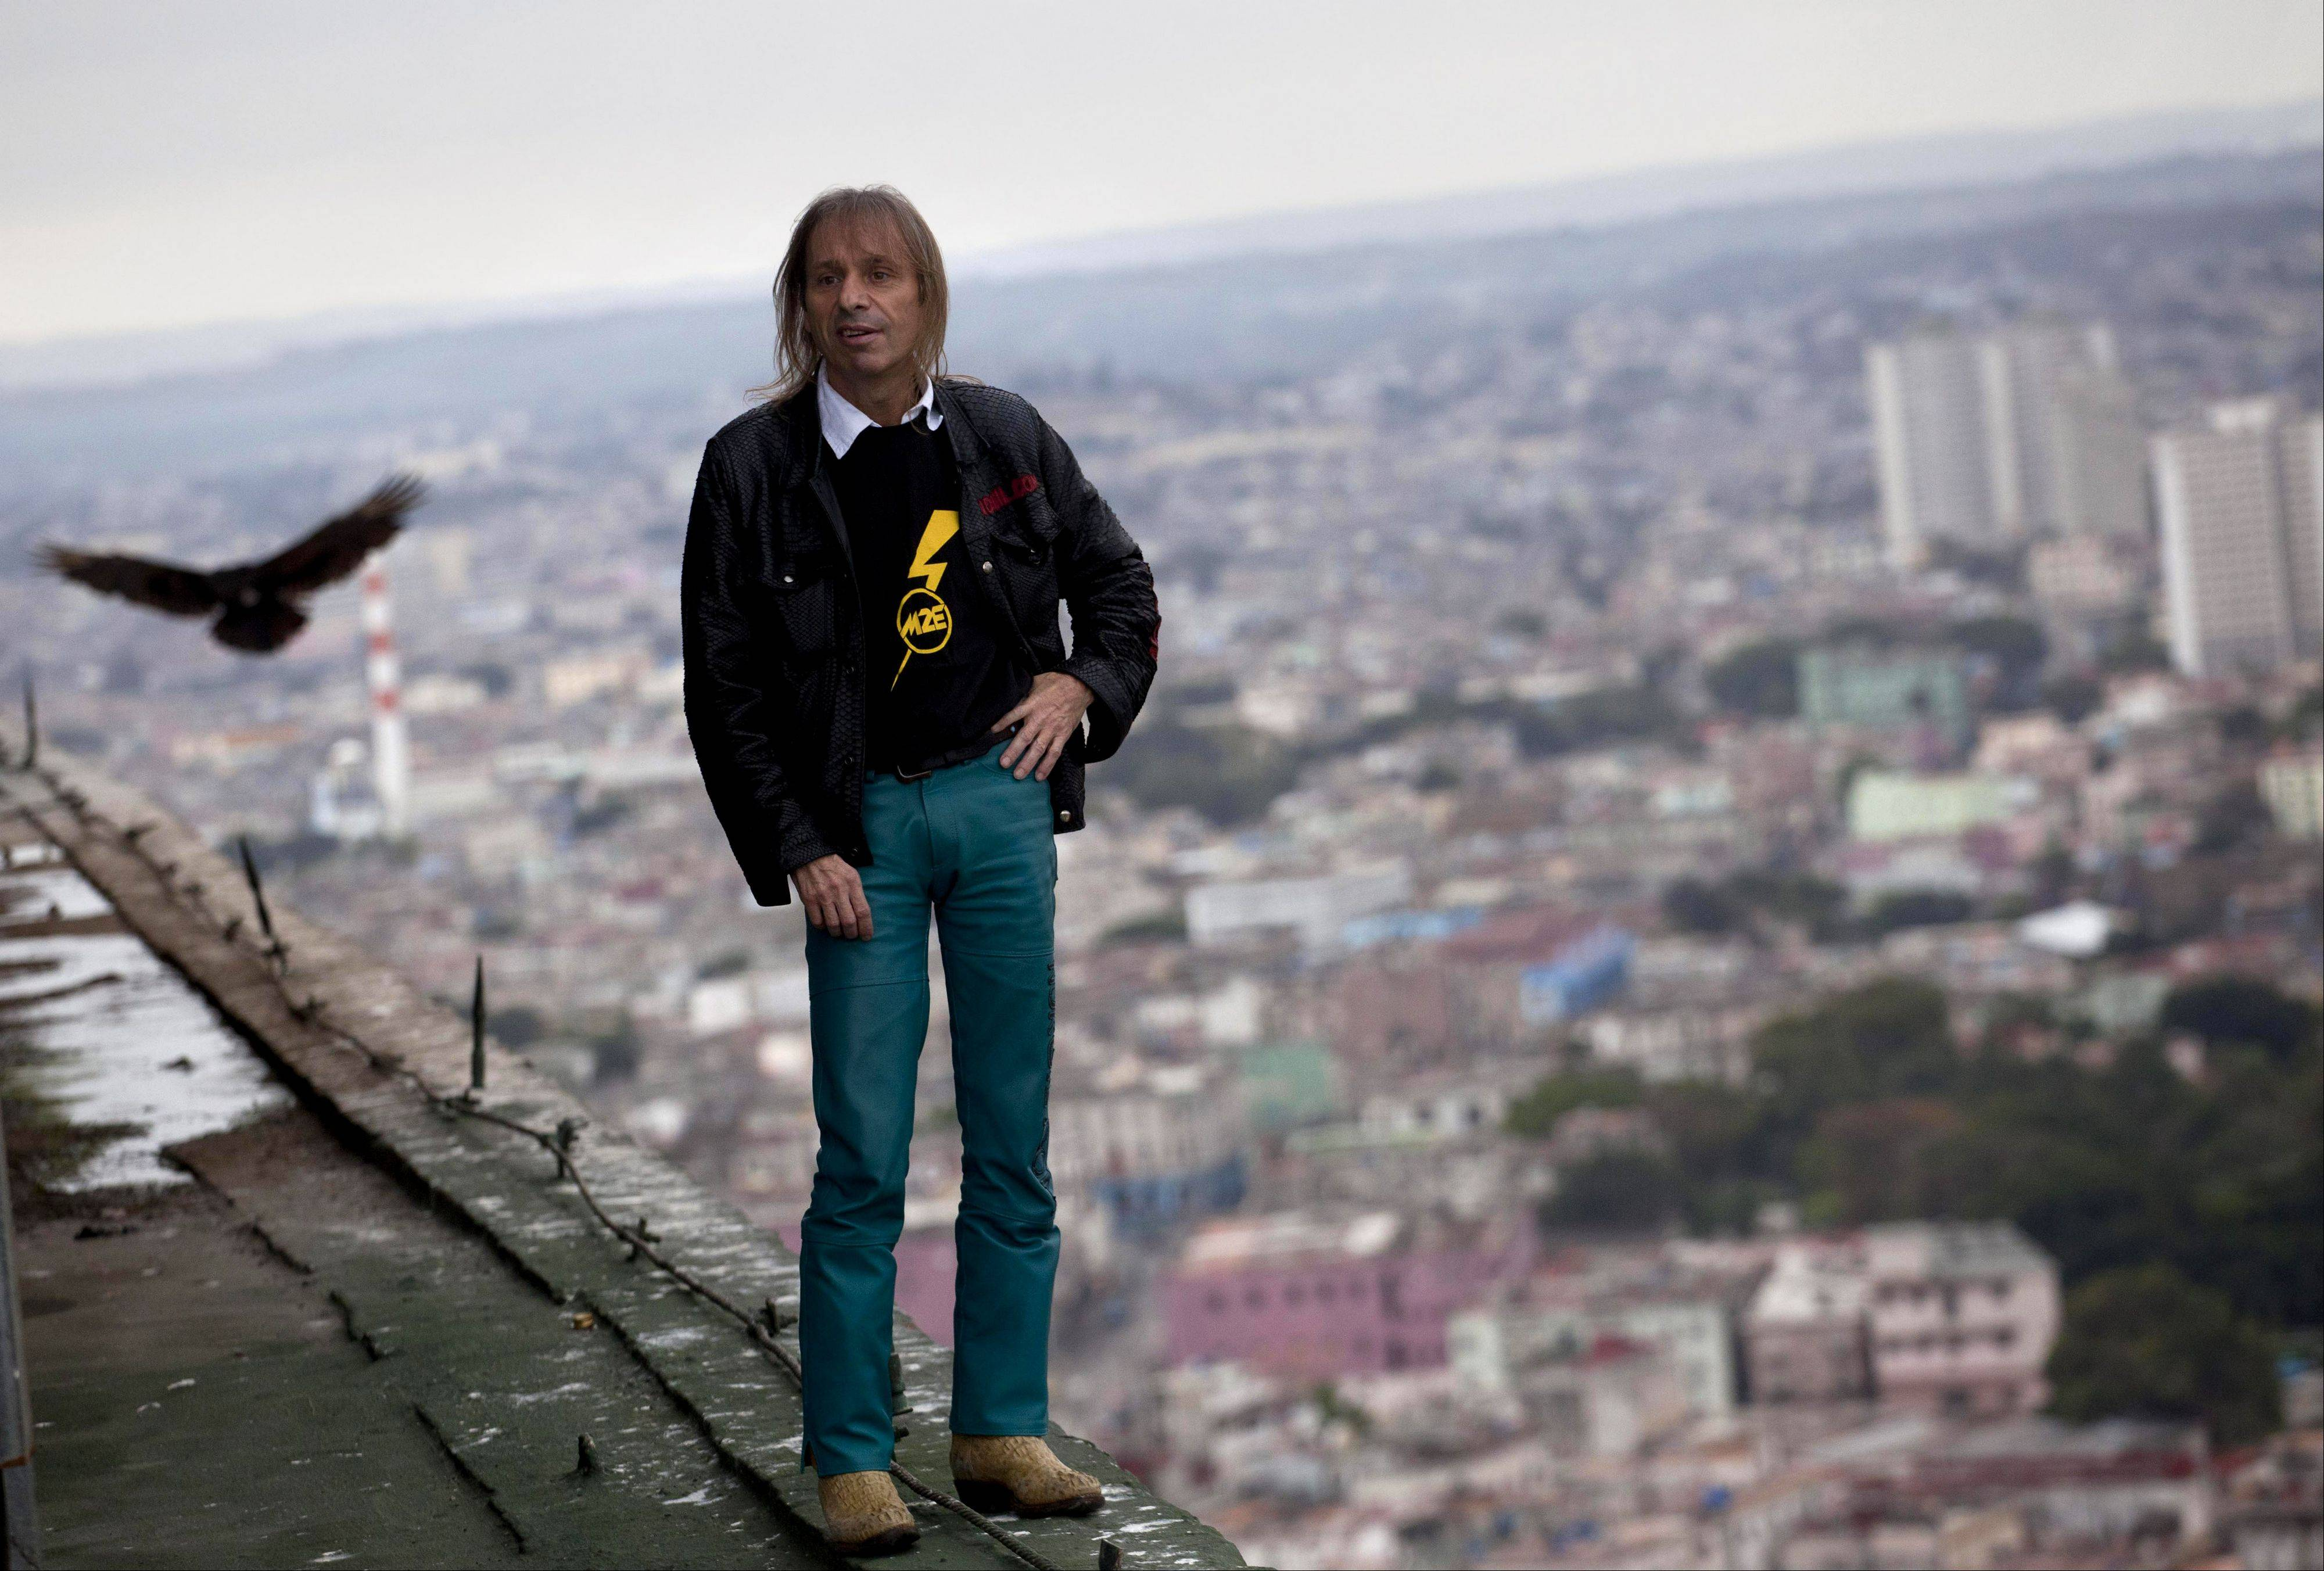 Alain Robert, known as �Spiderman,� poses for a portrait from the roof Friday of the Habana Libre hotel in Havana, Cuba.